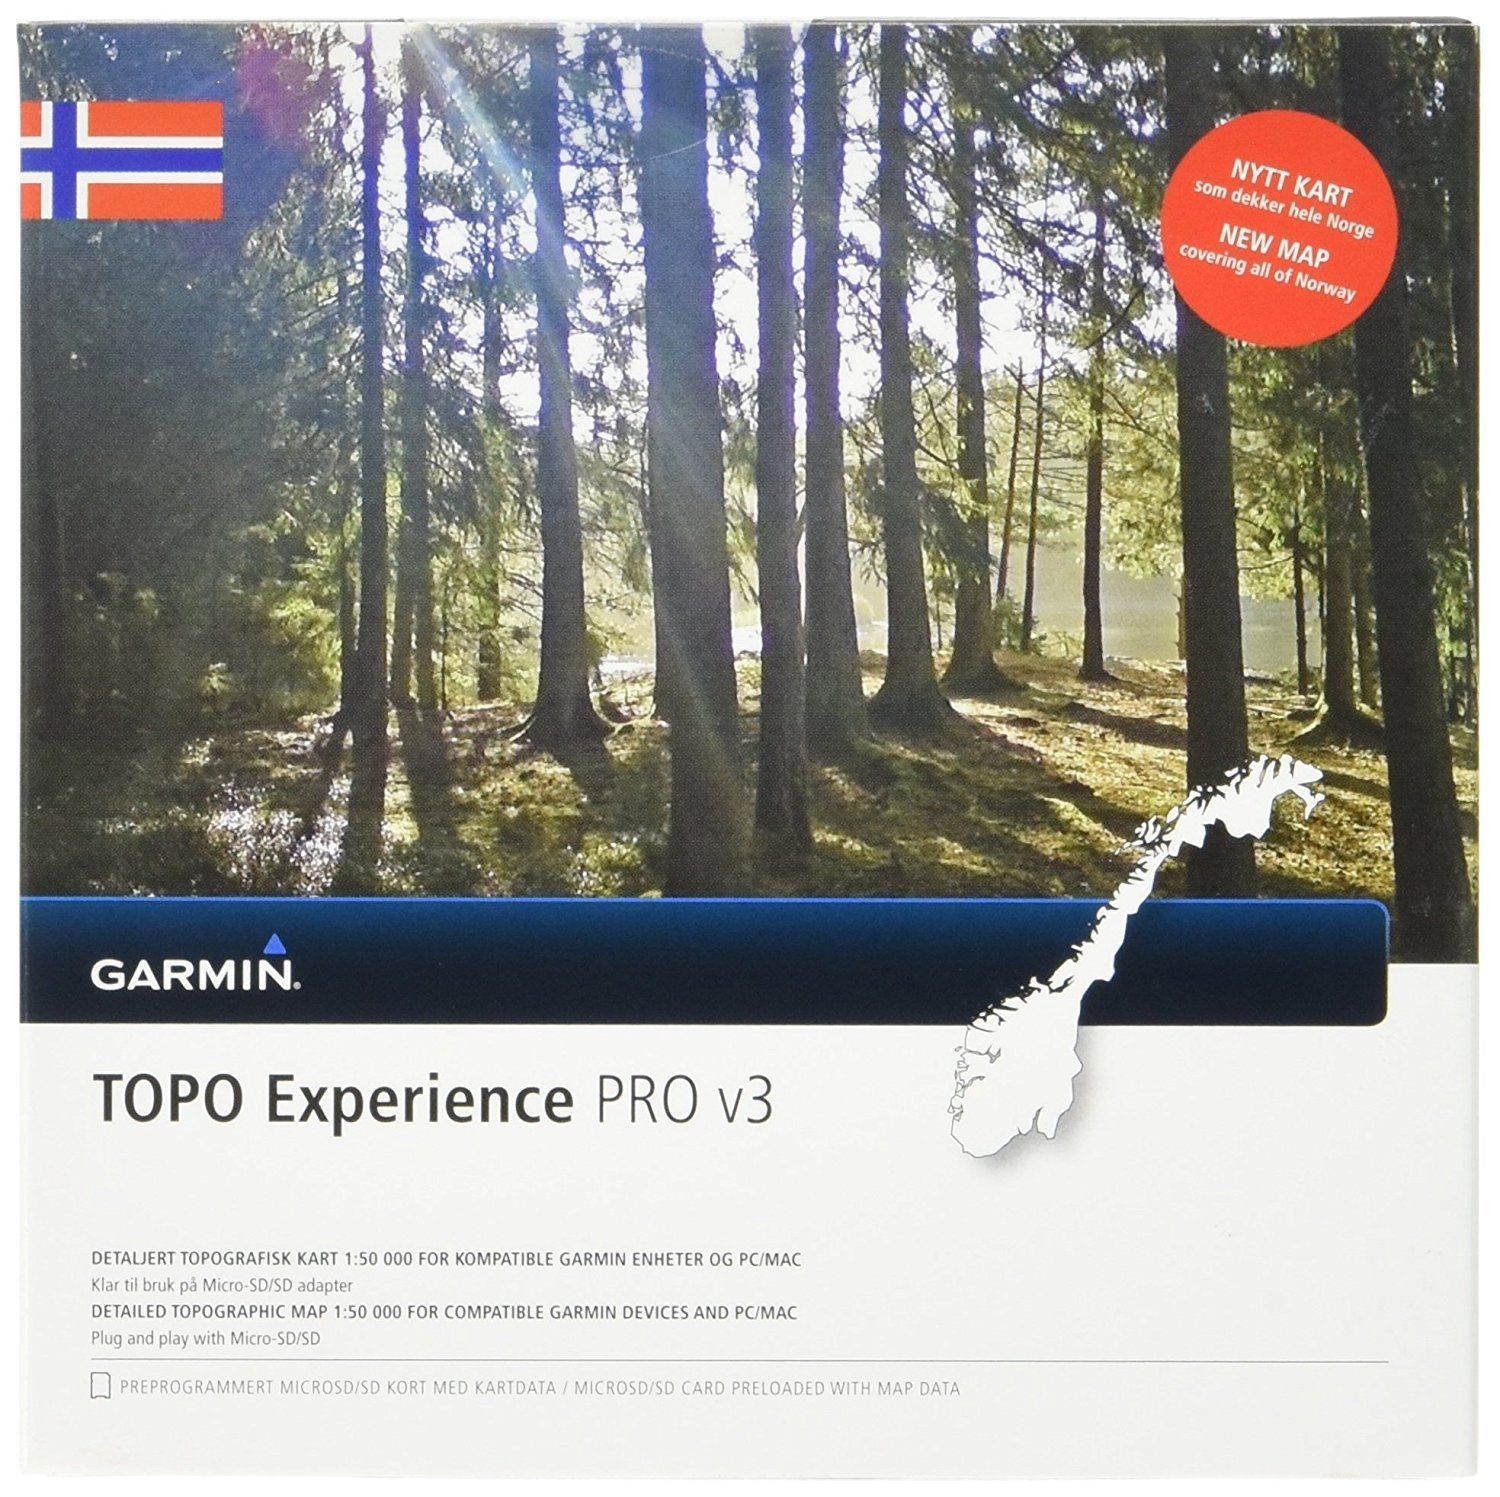 garmin edge 800 kart norge Topo Norway Experience v3 Pro  microSD/SD and similar items garmin edge 800 kart norge